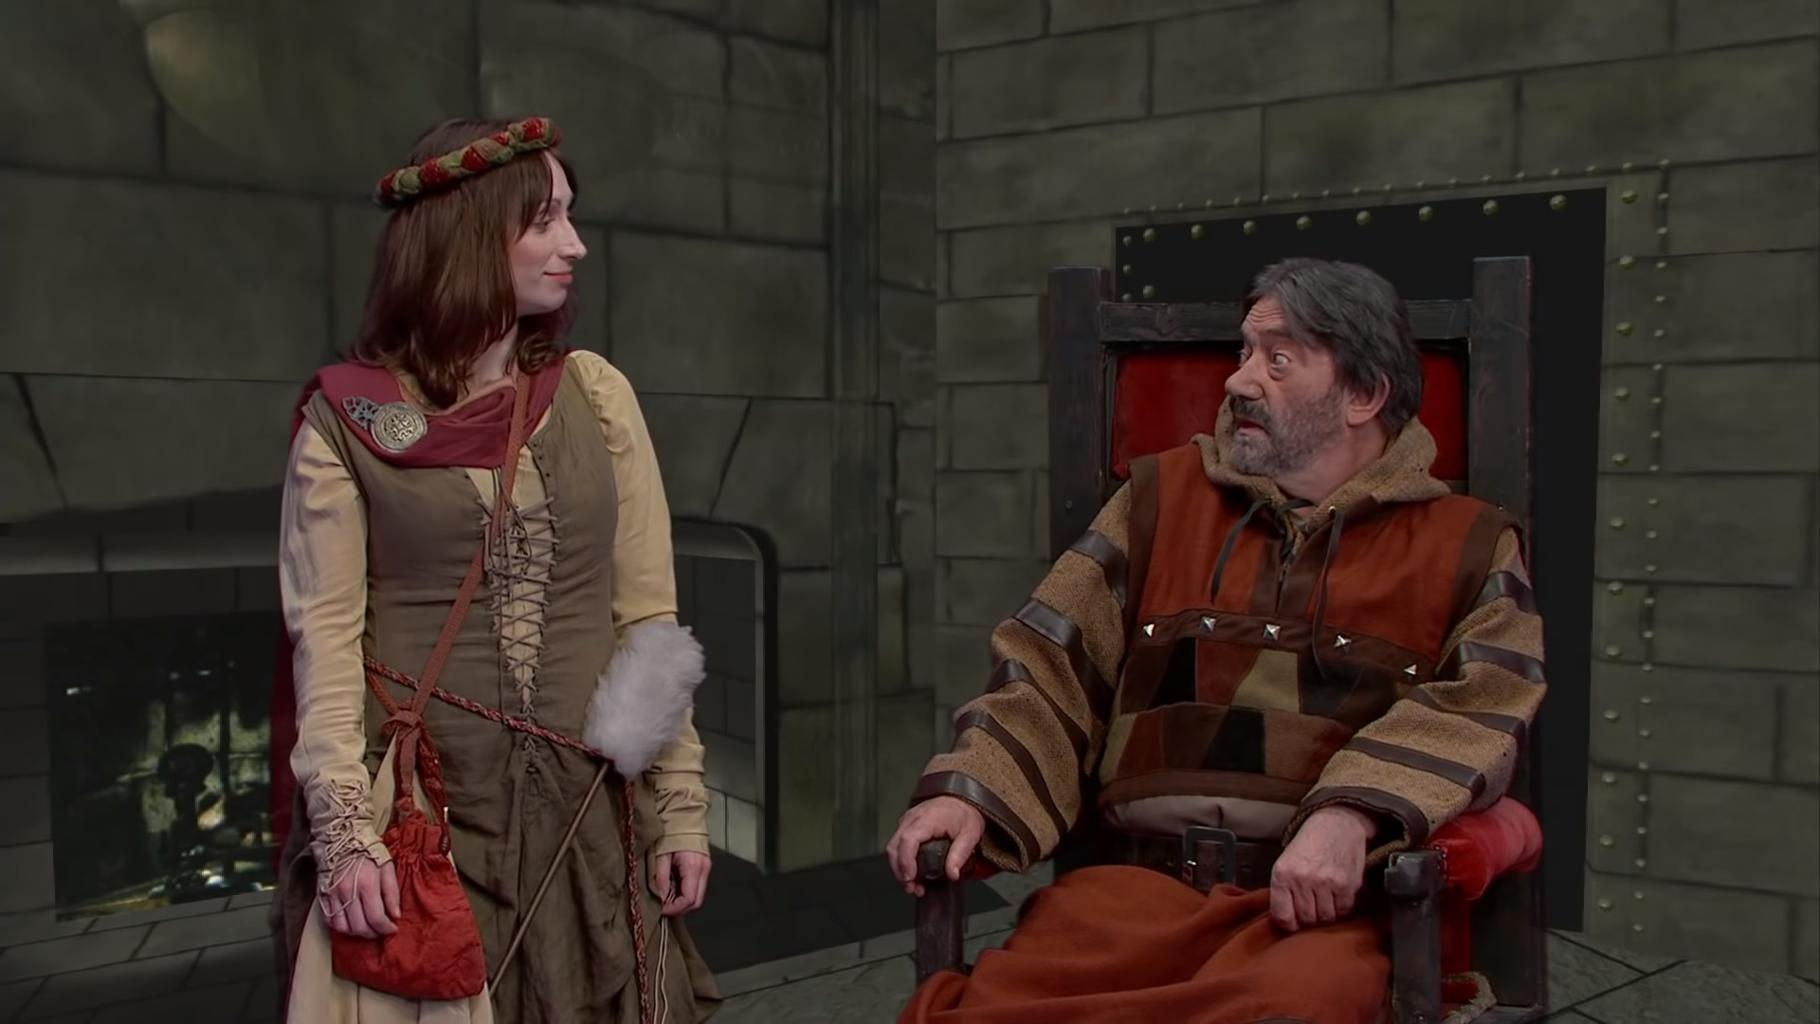 Isy Suttie and Hugo Myatt as Daisy and Treguard in the Geek Week 2013 episode of Knightmare